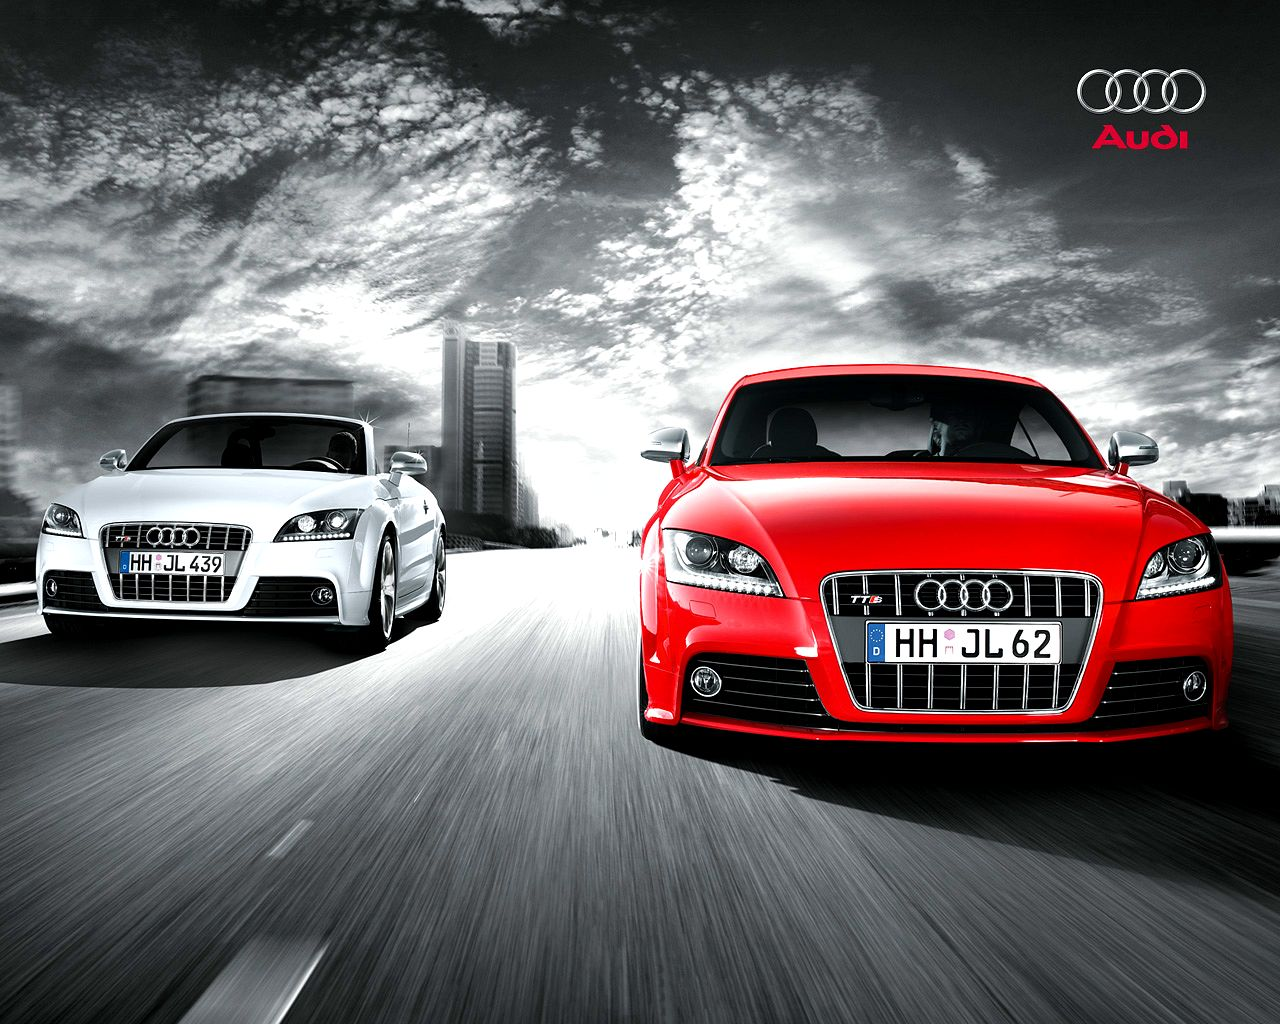 hd audi car wallpapers hd audi car wallpapers hd audi car wallpapers